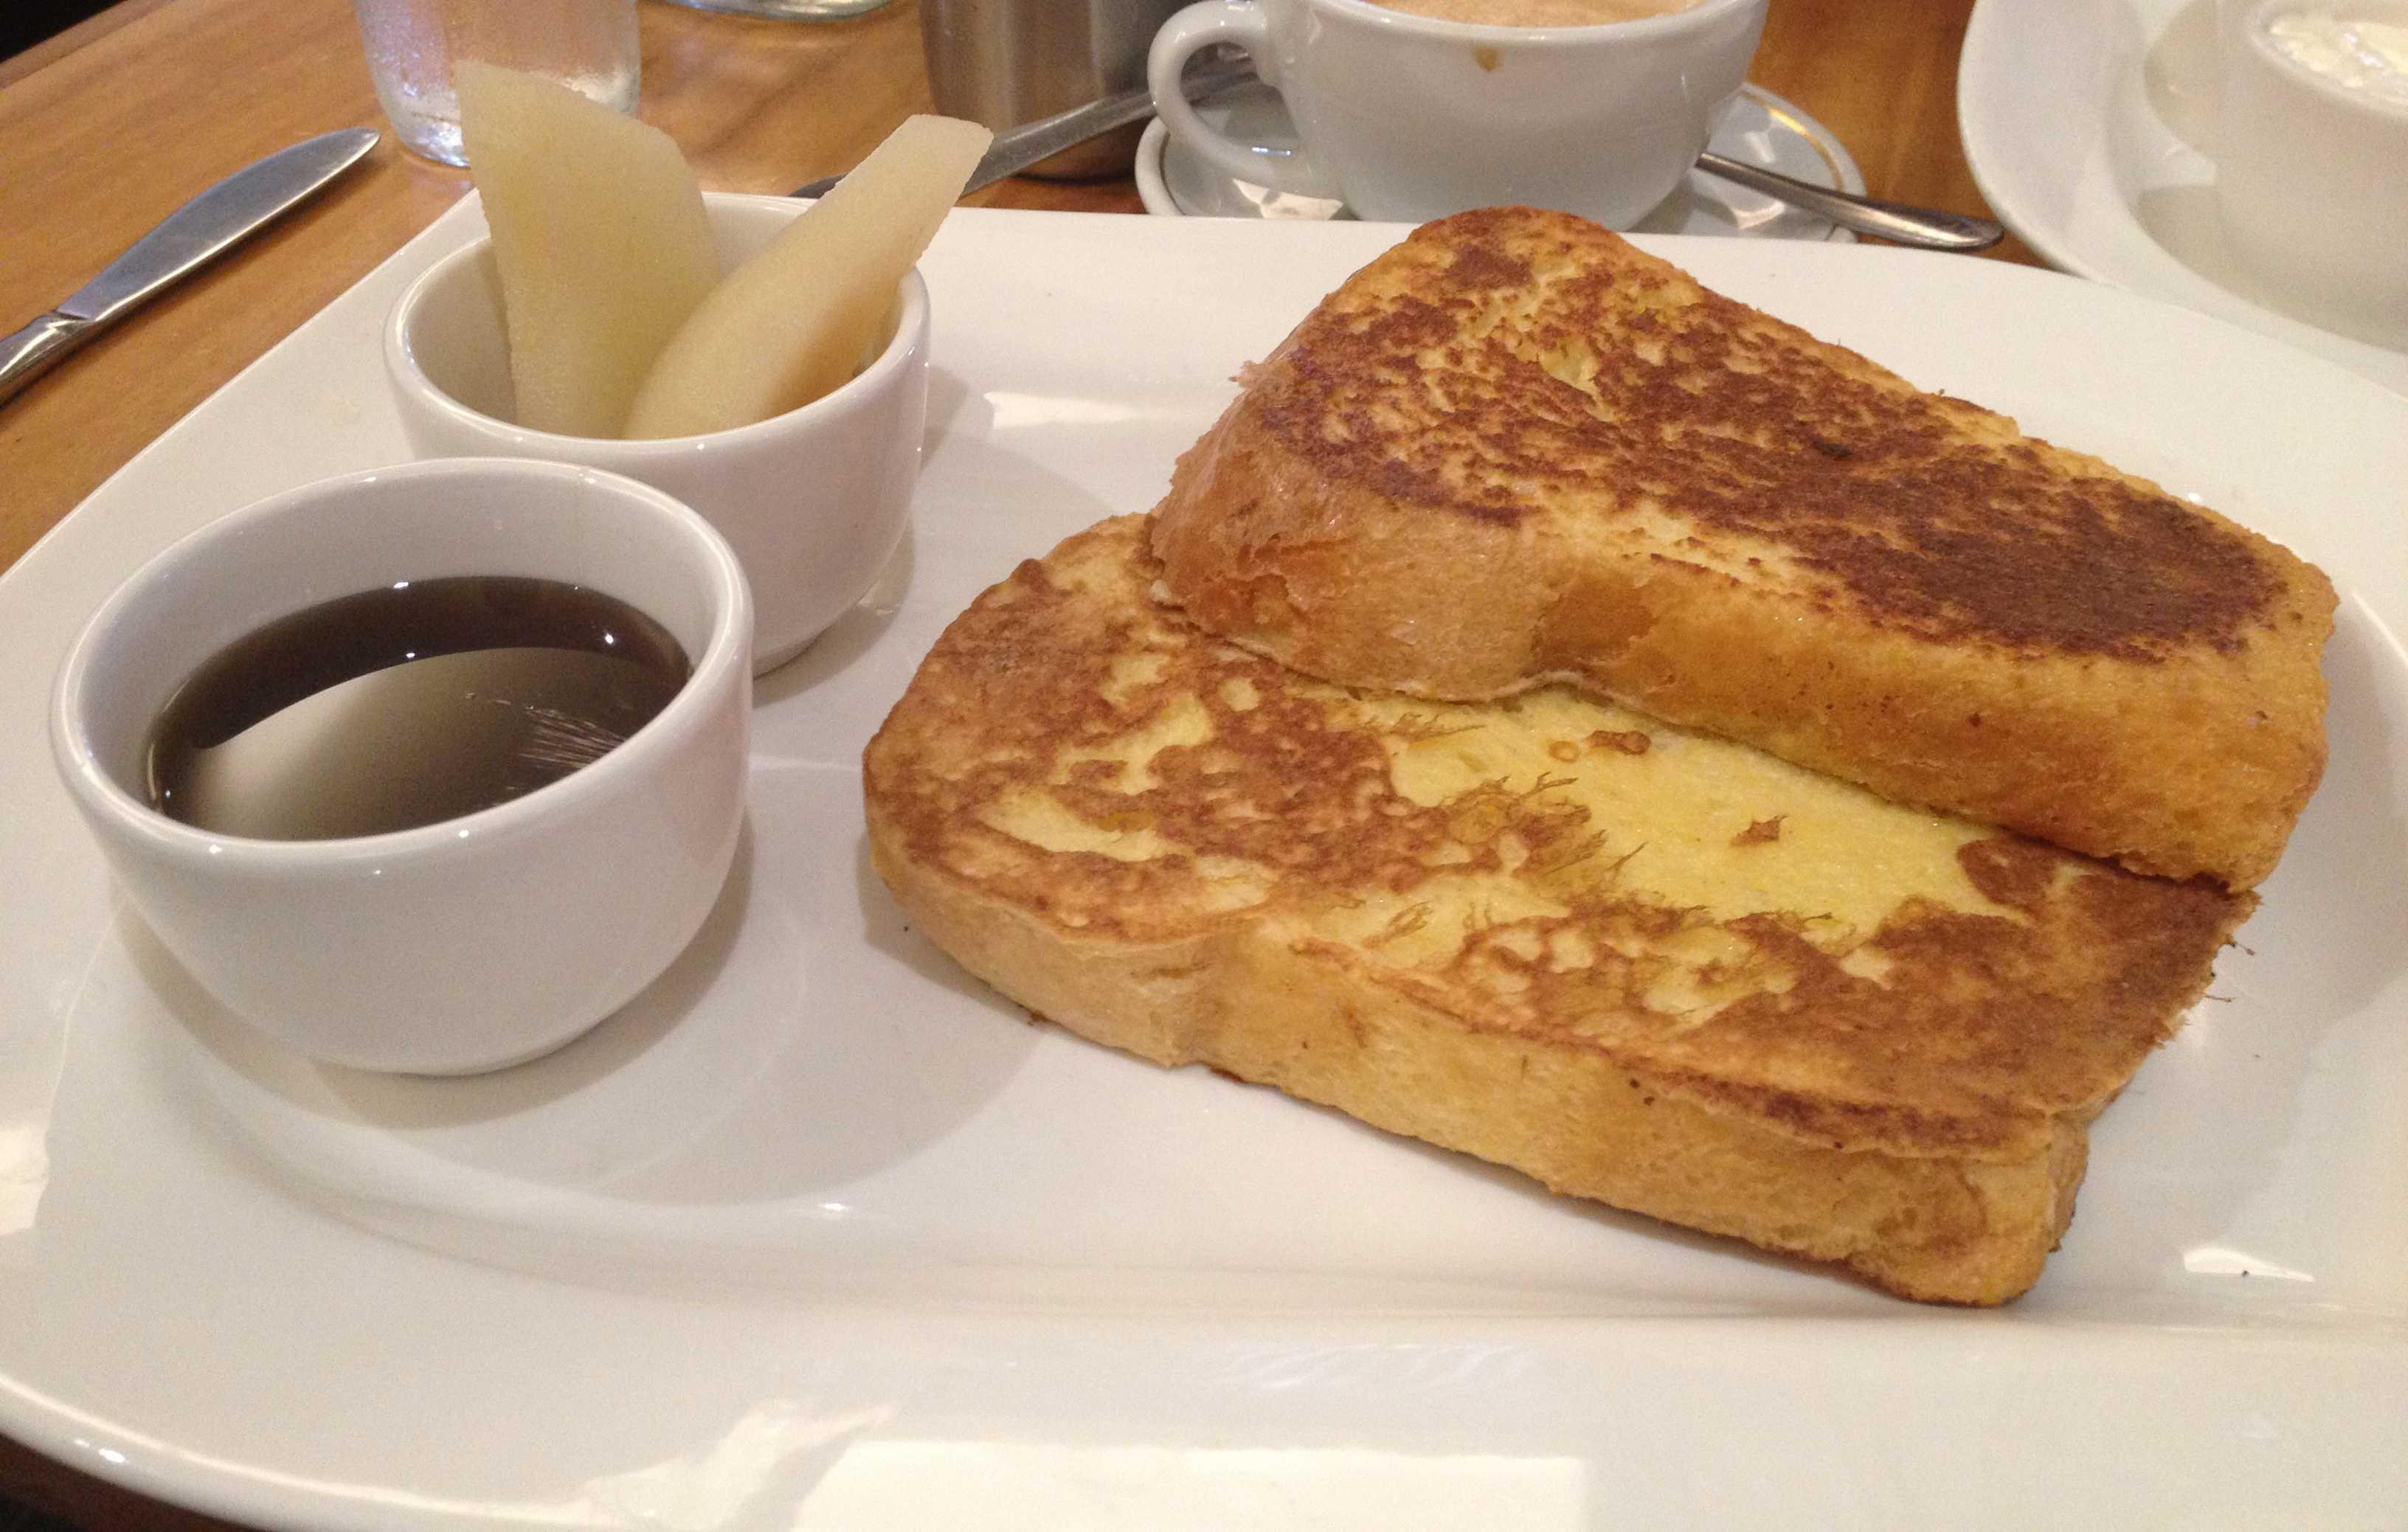 Brioche french toast with maple syrup and stewed pears